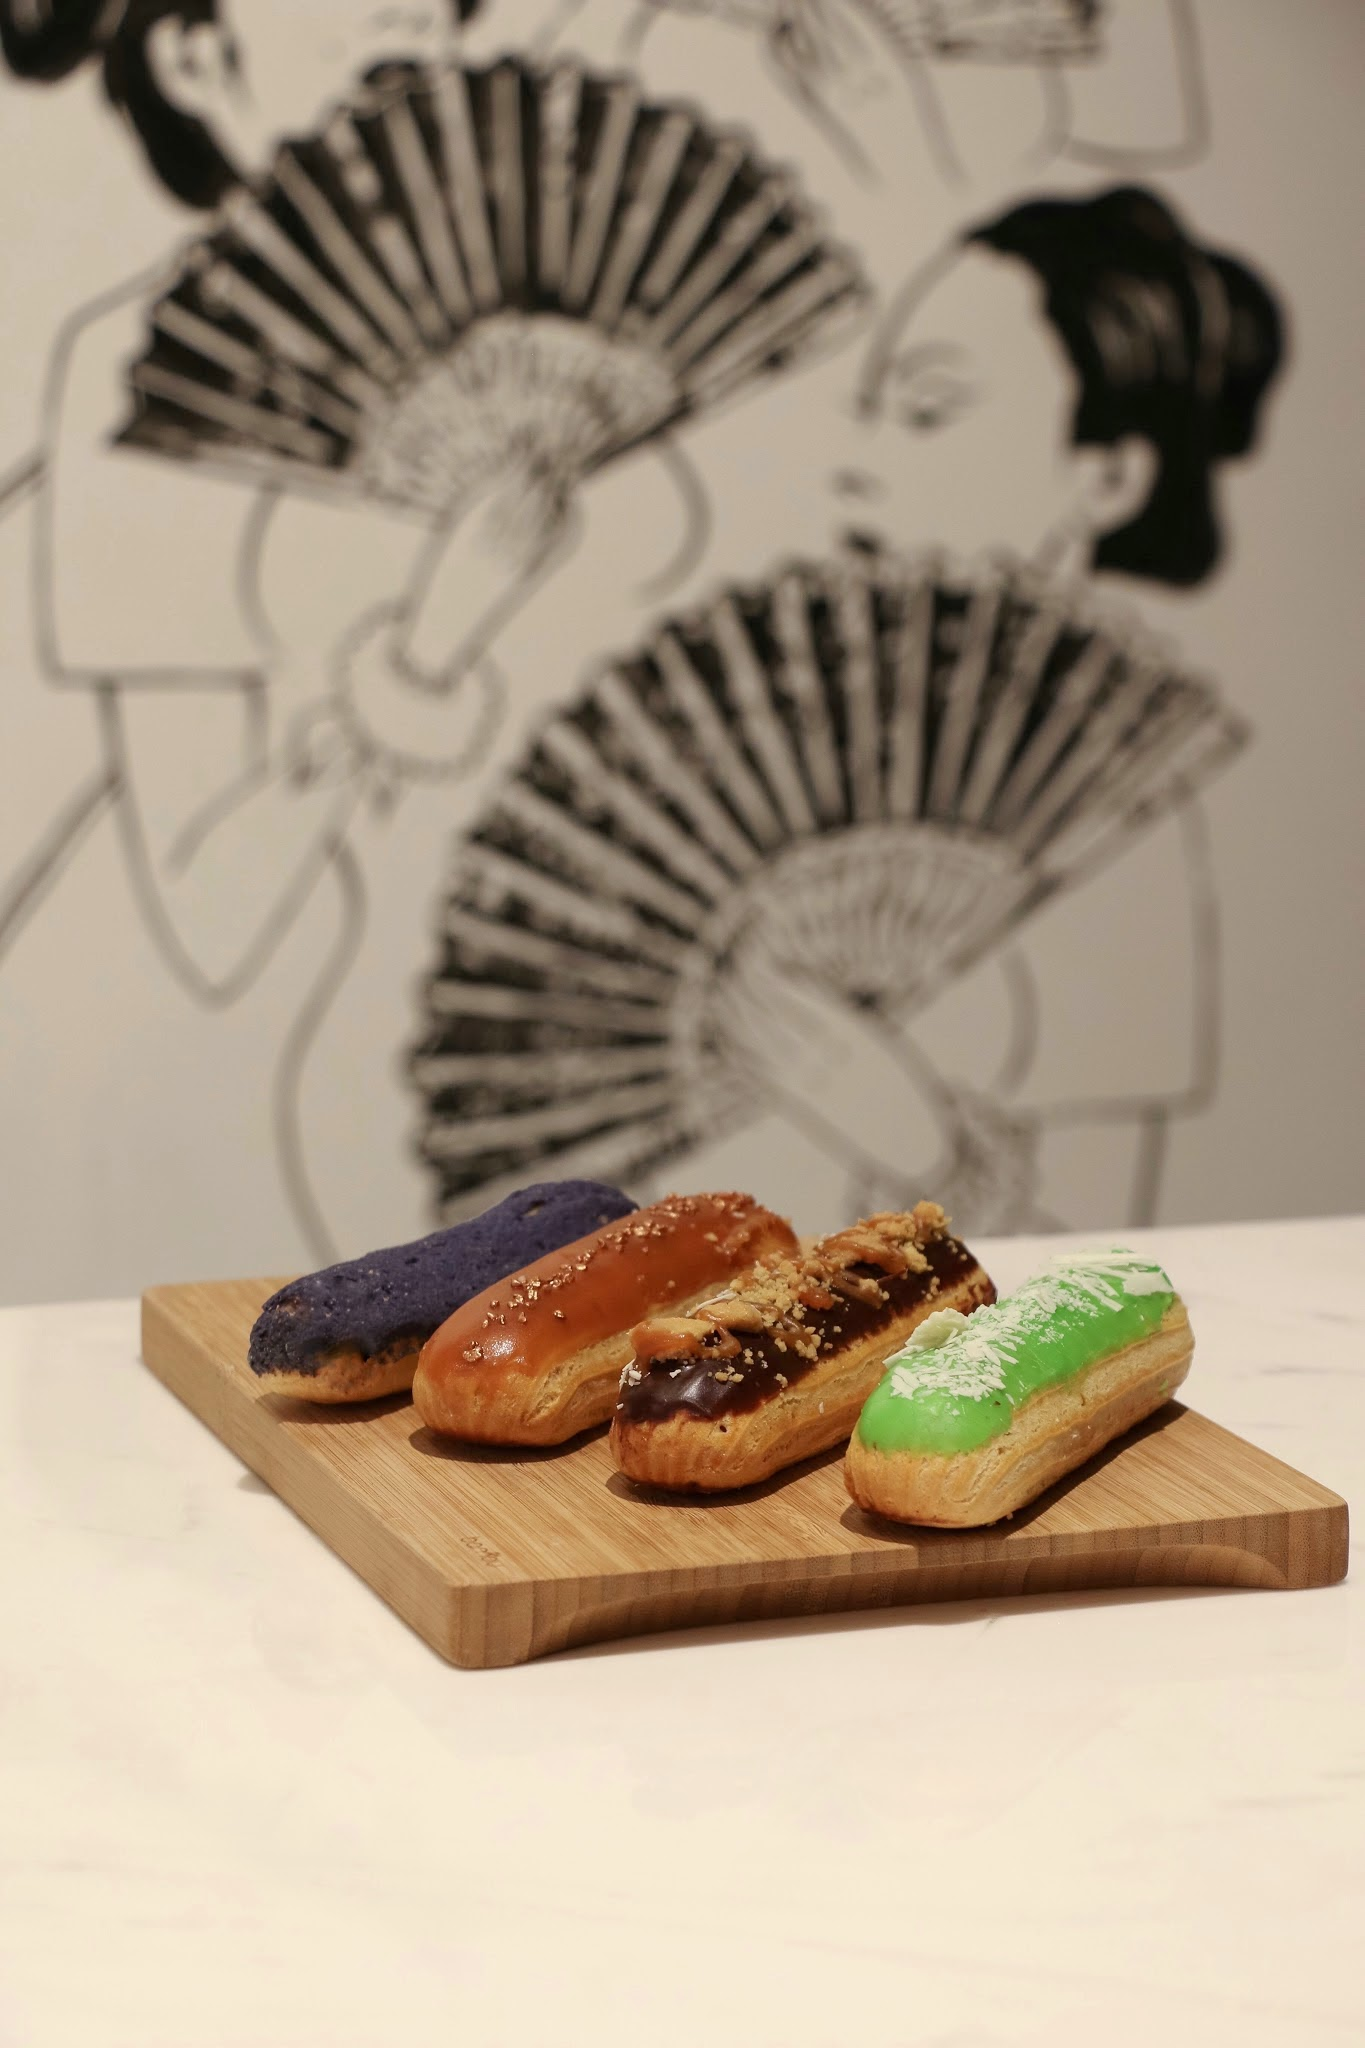 Artisan Room HK, Sweet Potato, Salted Caramel, Banoffee, Matcha Eclairs